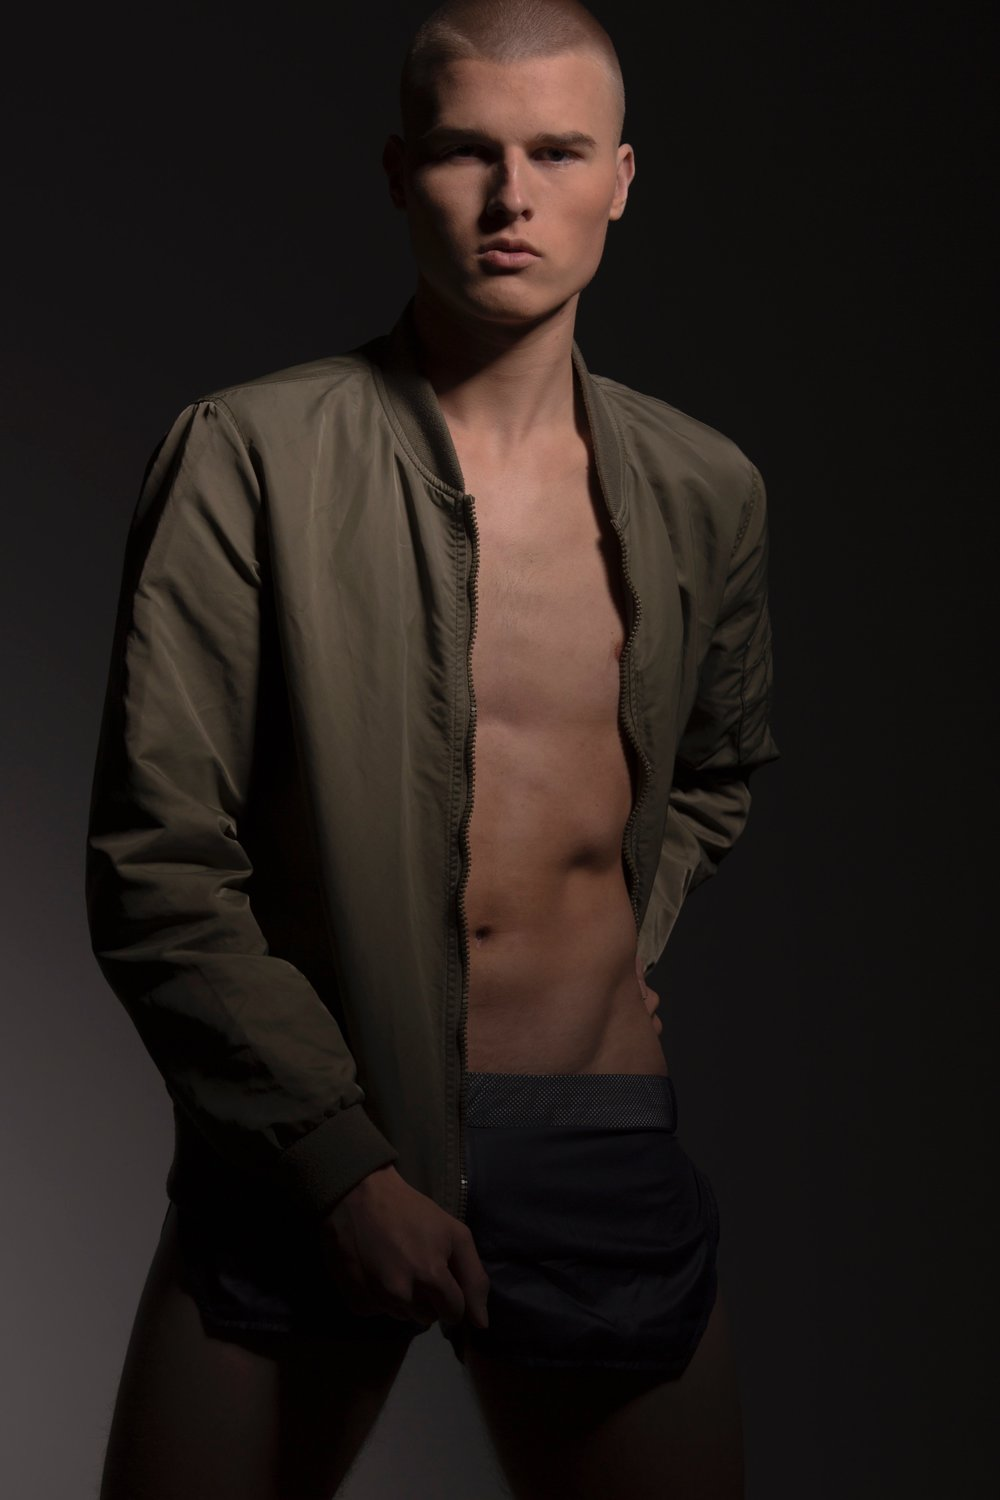 David-vE-ncmodelscouting+%2814%29.jpg